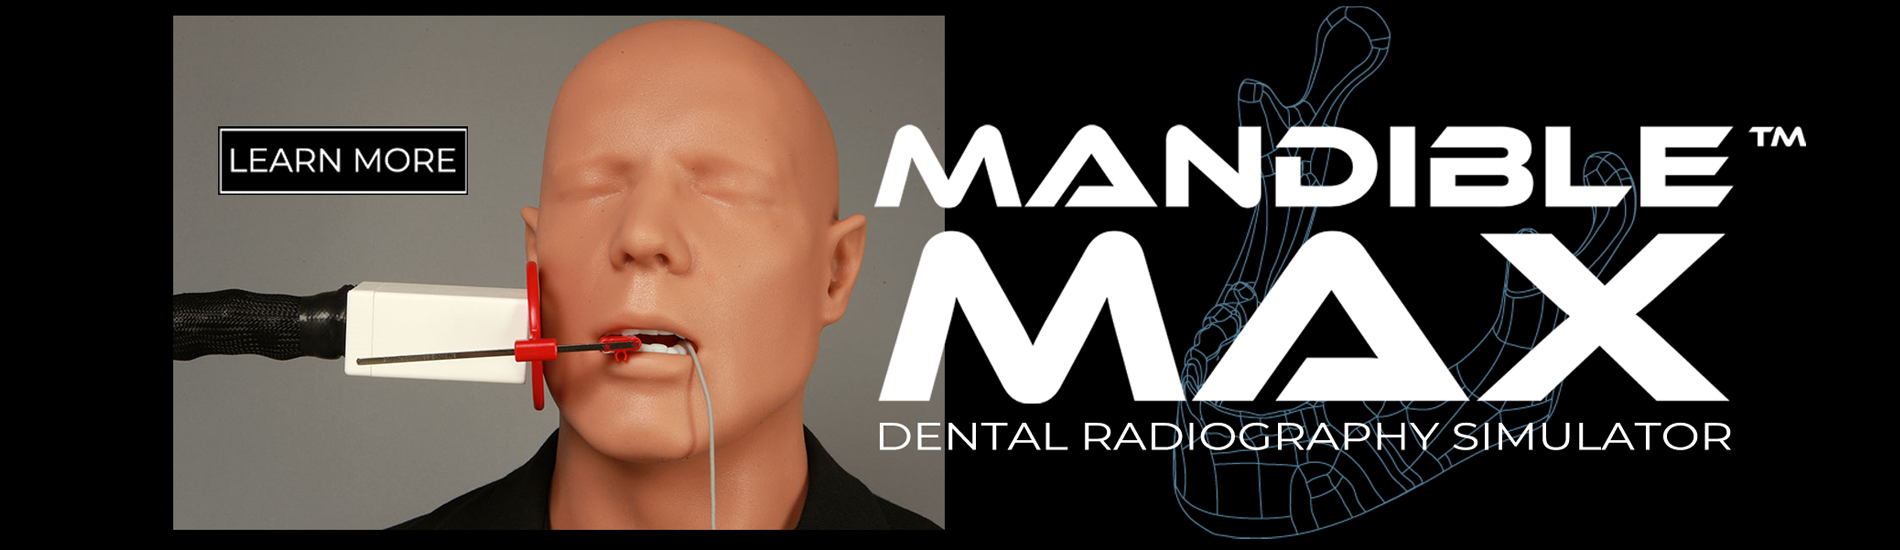 https://www.sawbones.com/mandible-max-dental-radiography-simulator-kit-includes-mannequin-laptop-and-software1573.html